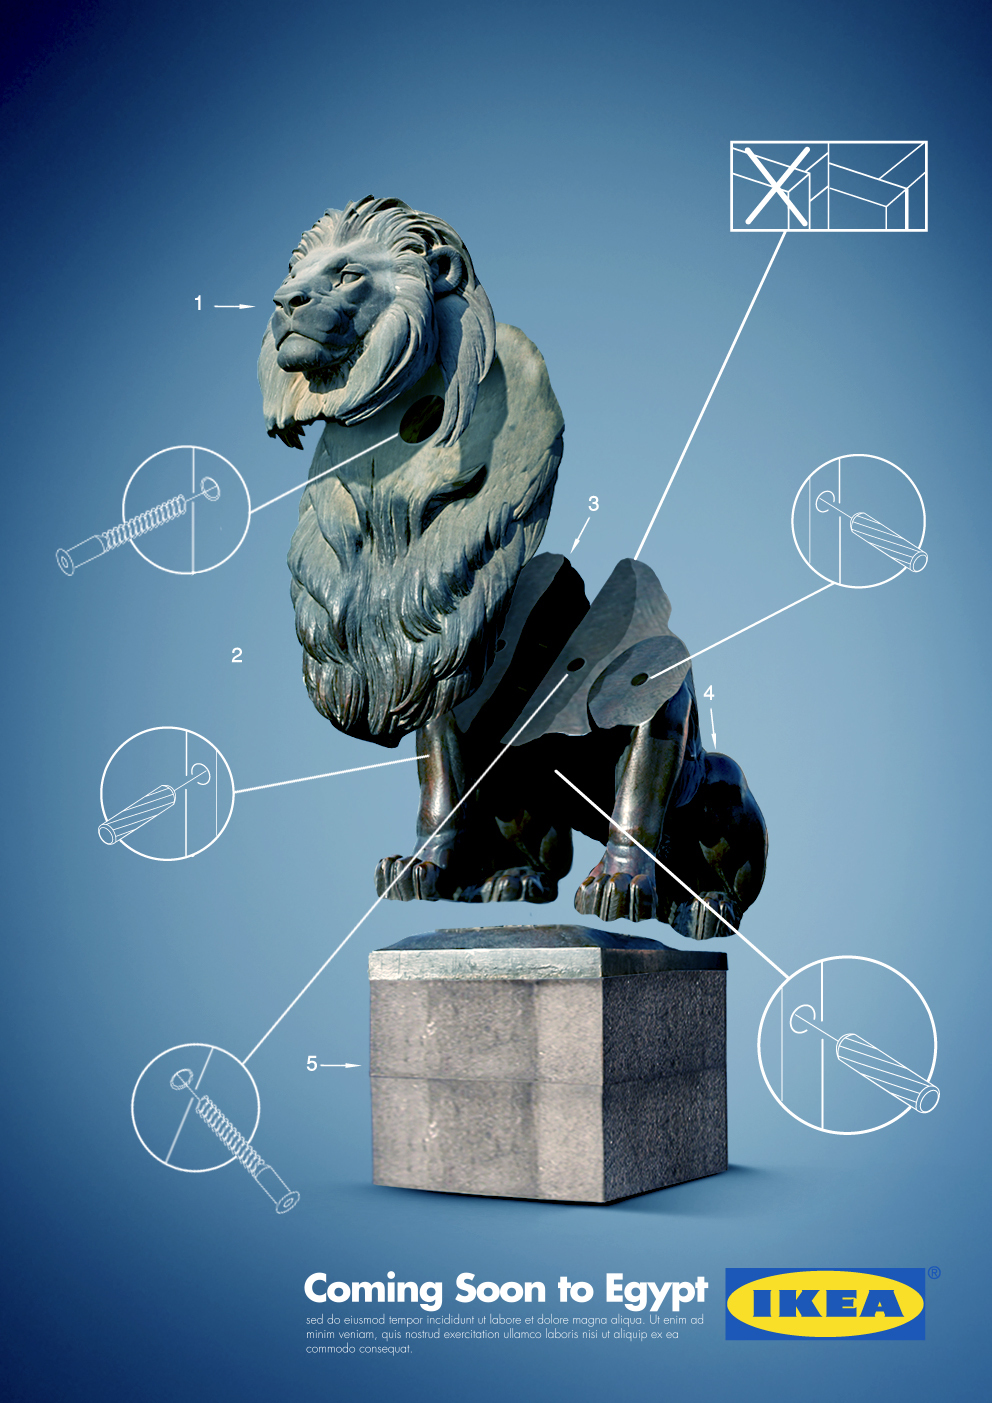 IKEA - Coming soon to Egypt (Lion)